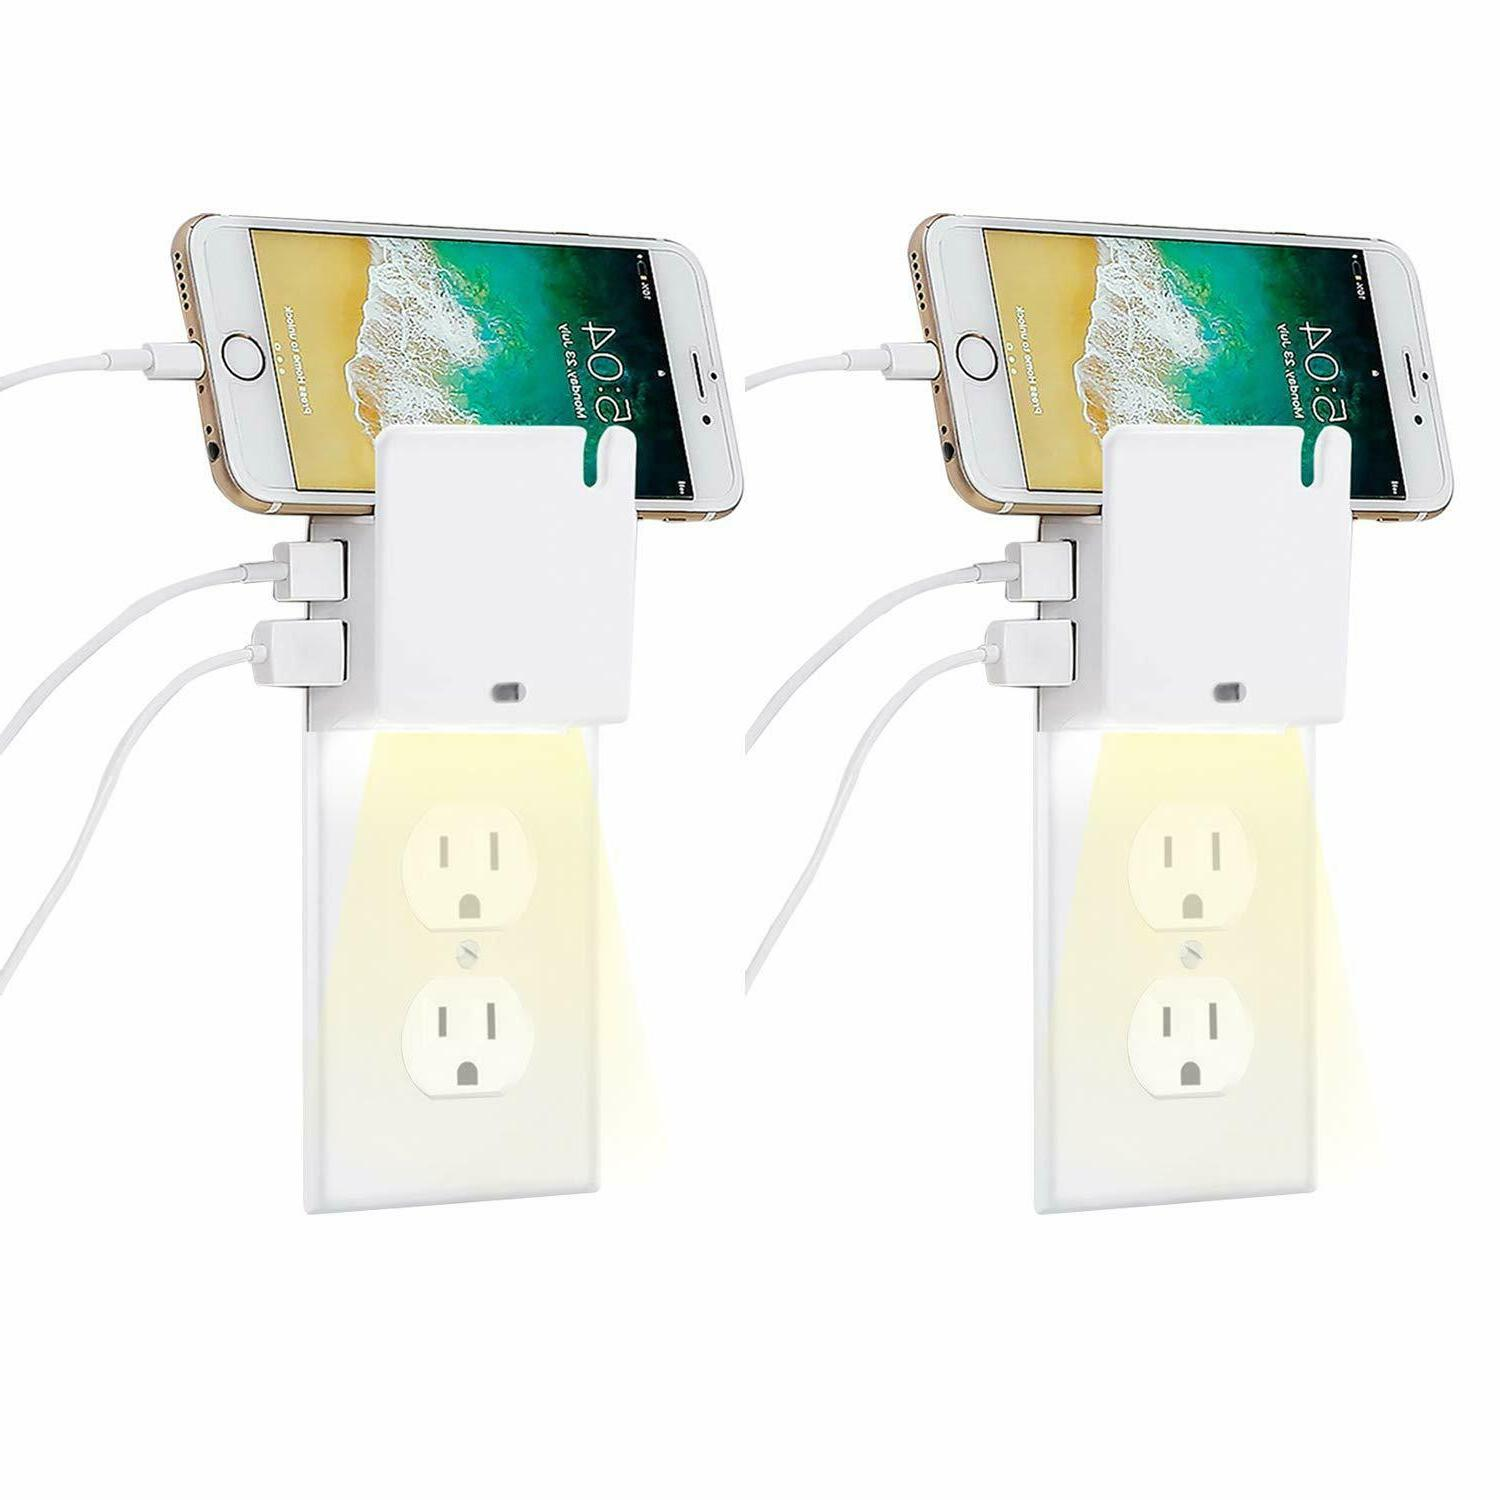 2x Duplex Wall Outlet Cover Wall Plate with Led Sensor Night